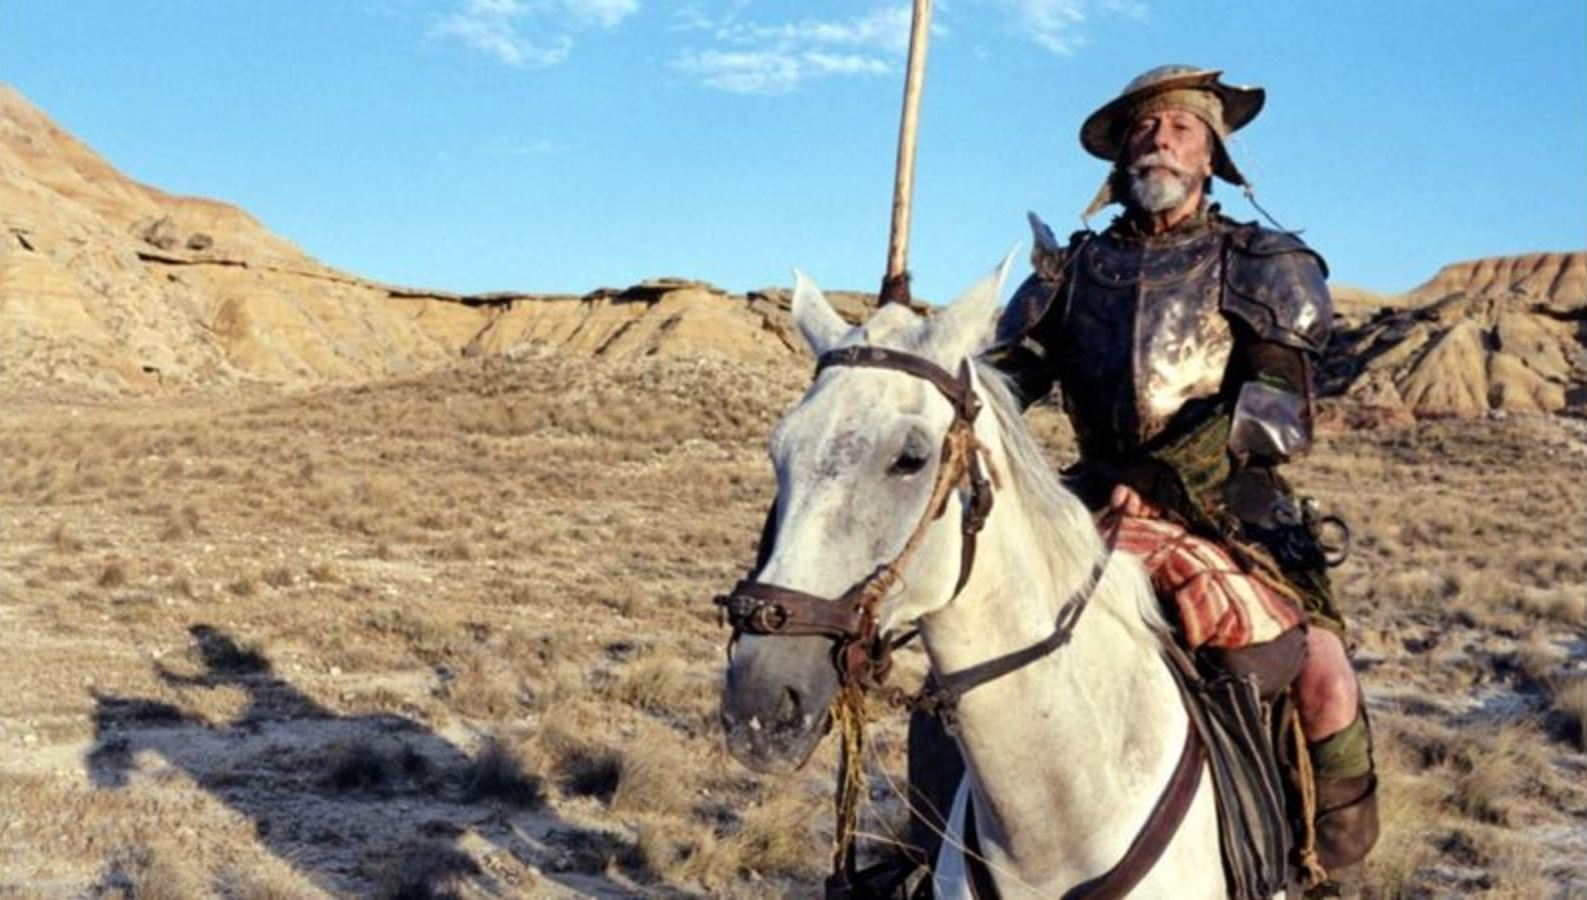 Jean Rochefort as Don Quixote in Lost in La Mancha (2002)